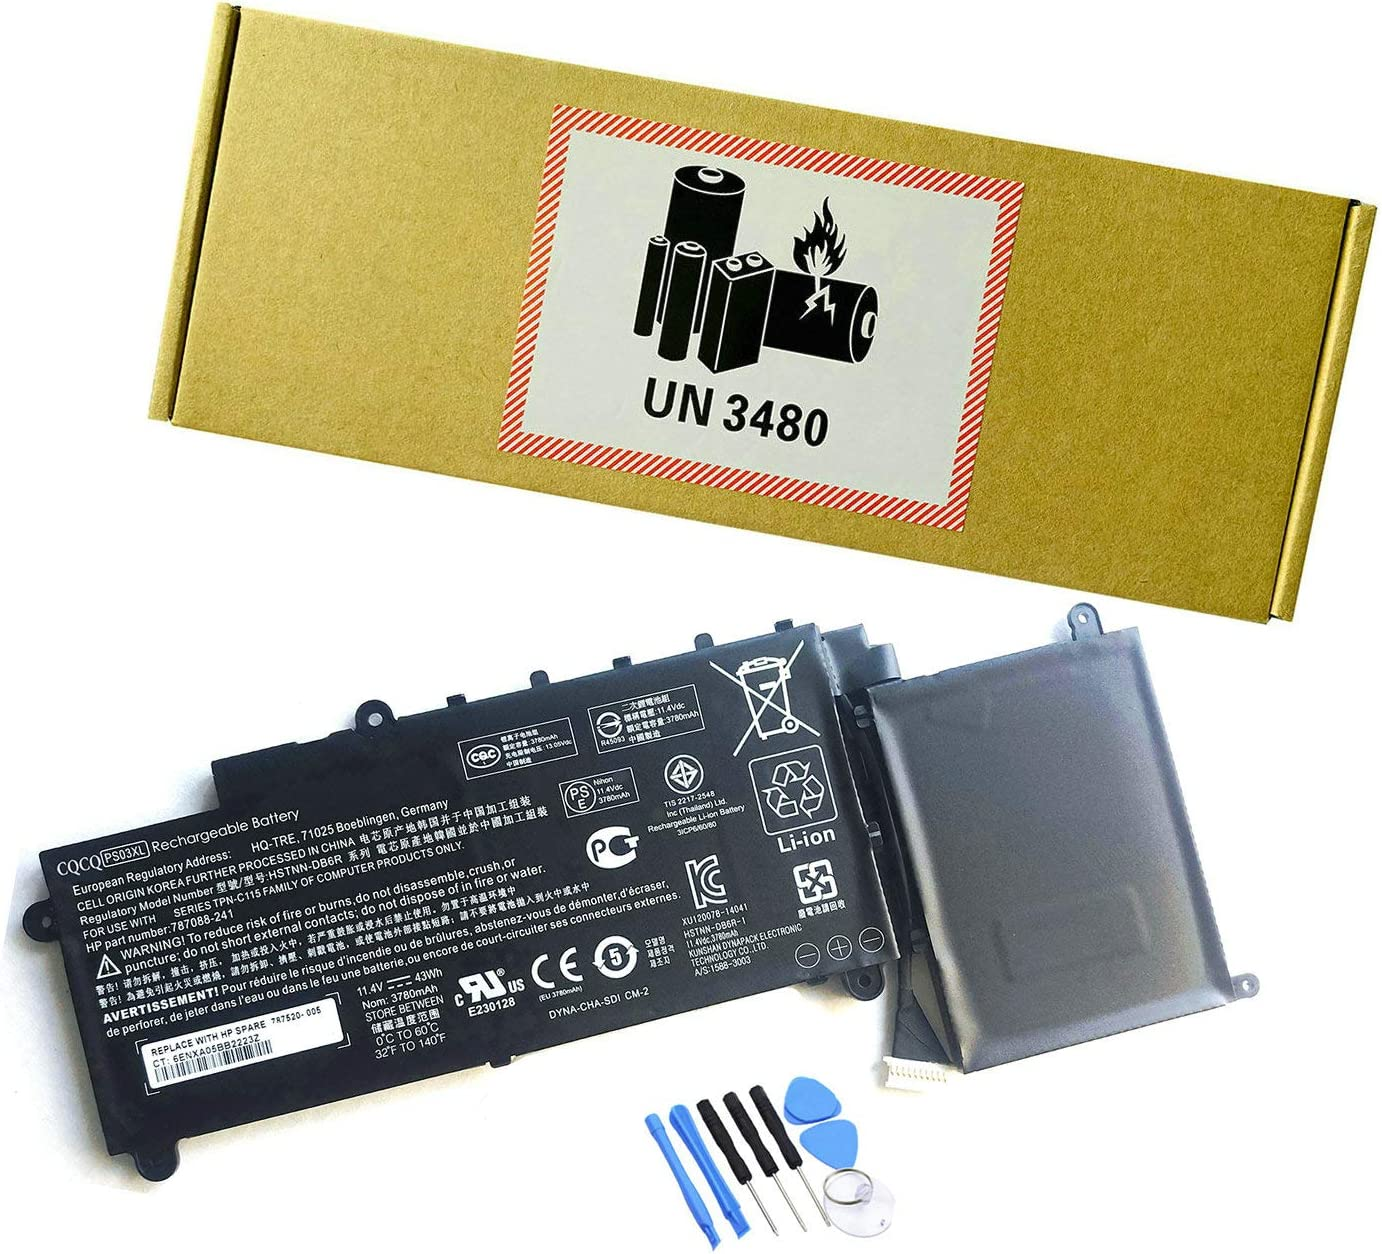 CQCQ Compatible PS03XL Battery Replacement for HP Pavilion X360 11-D010NR 11-D023TU 11-R000NG 11-R007TU 11-R008TU 11-R010NR 11-R050SA TPN-C115 HSTNN-DH6R [11.4V 43Wh]